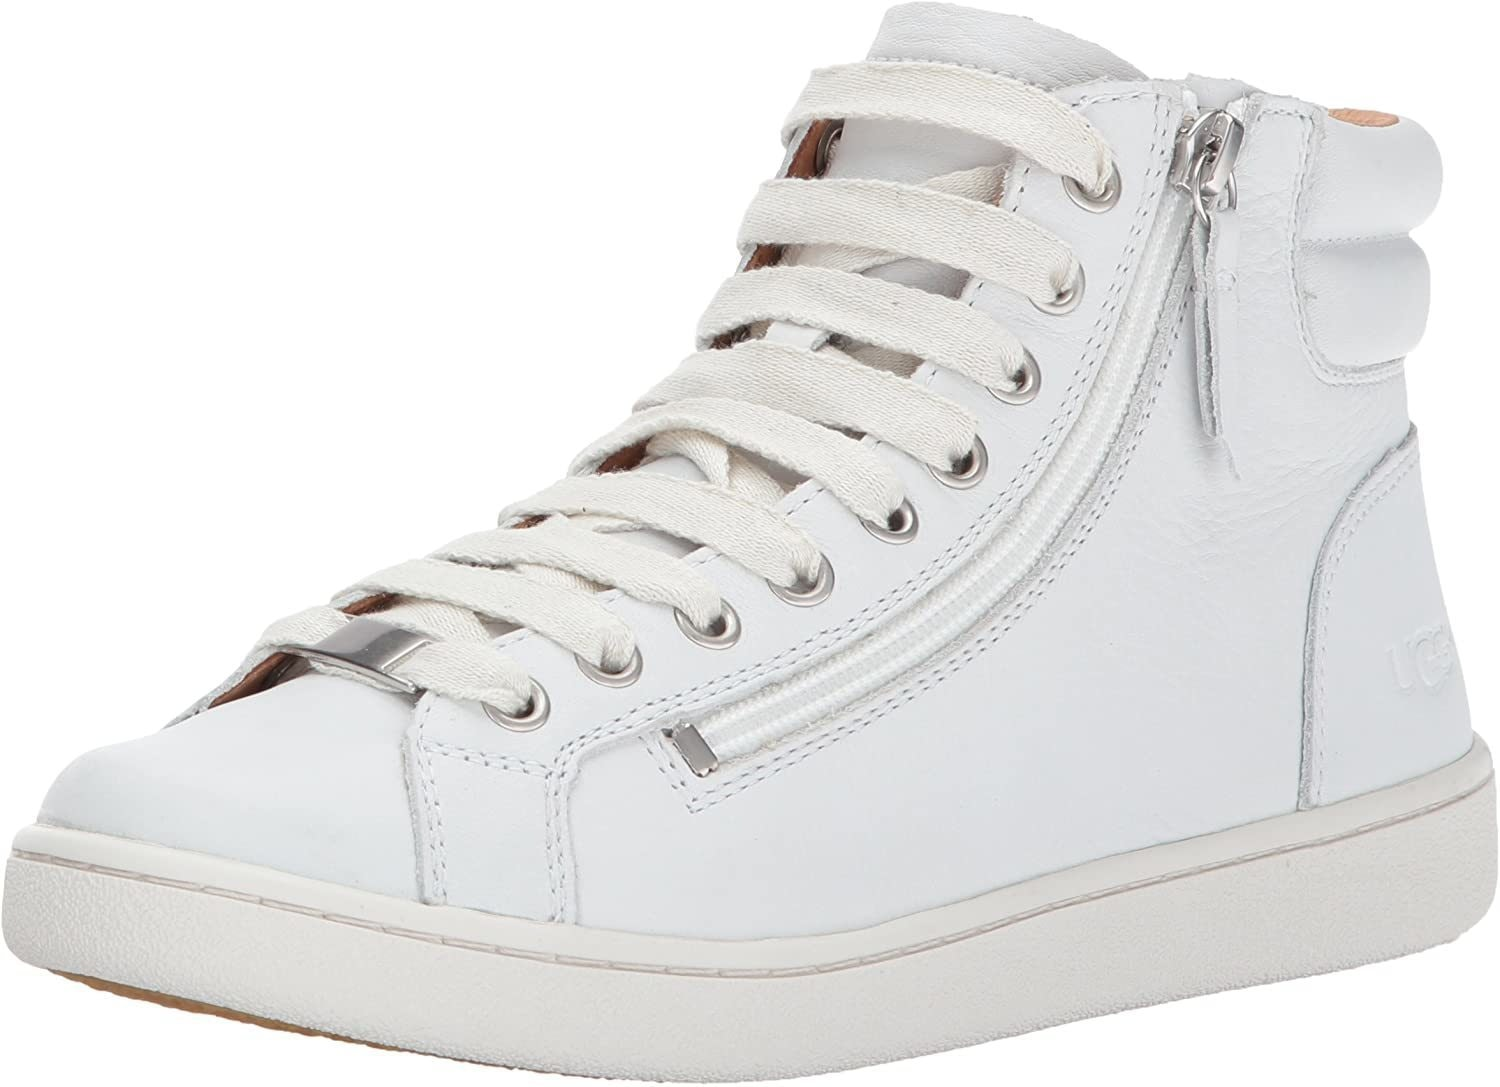 Ugg Hightop Sneakers